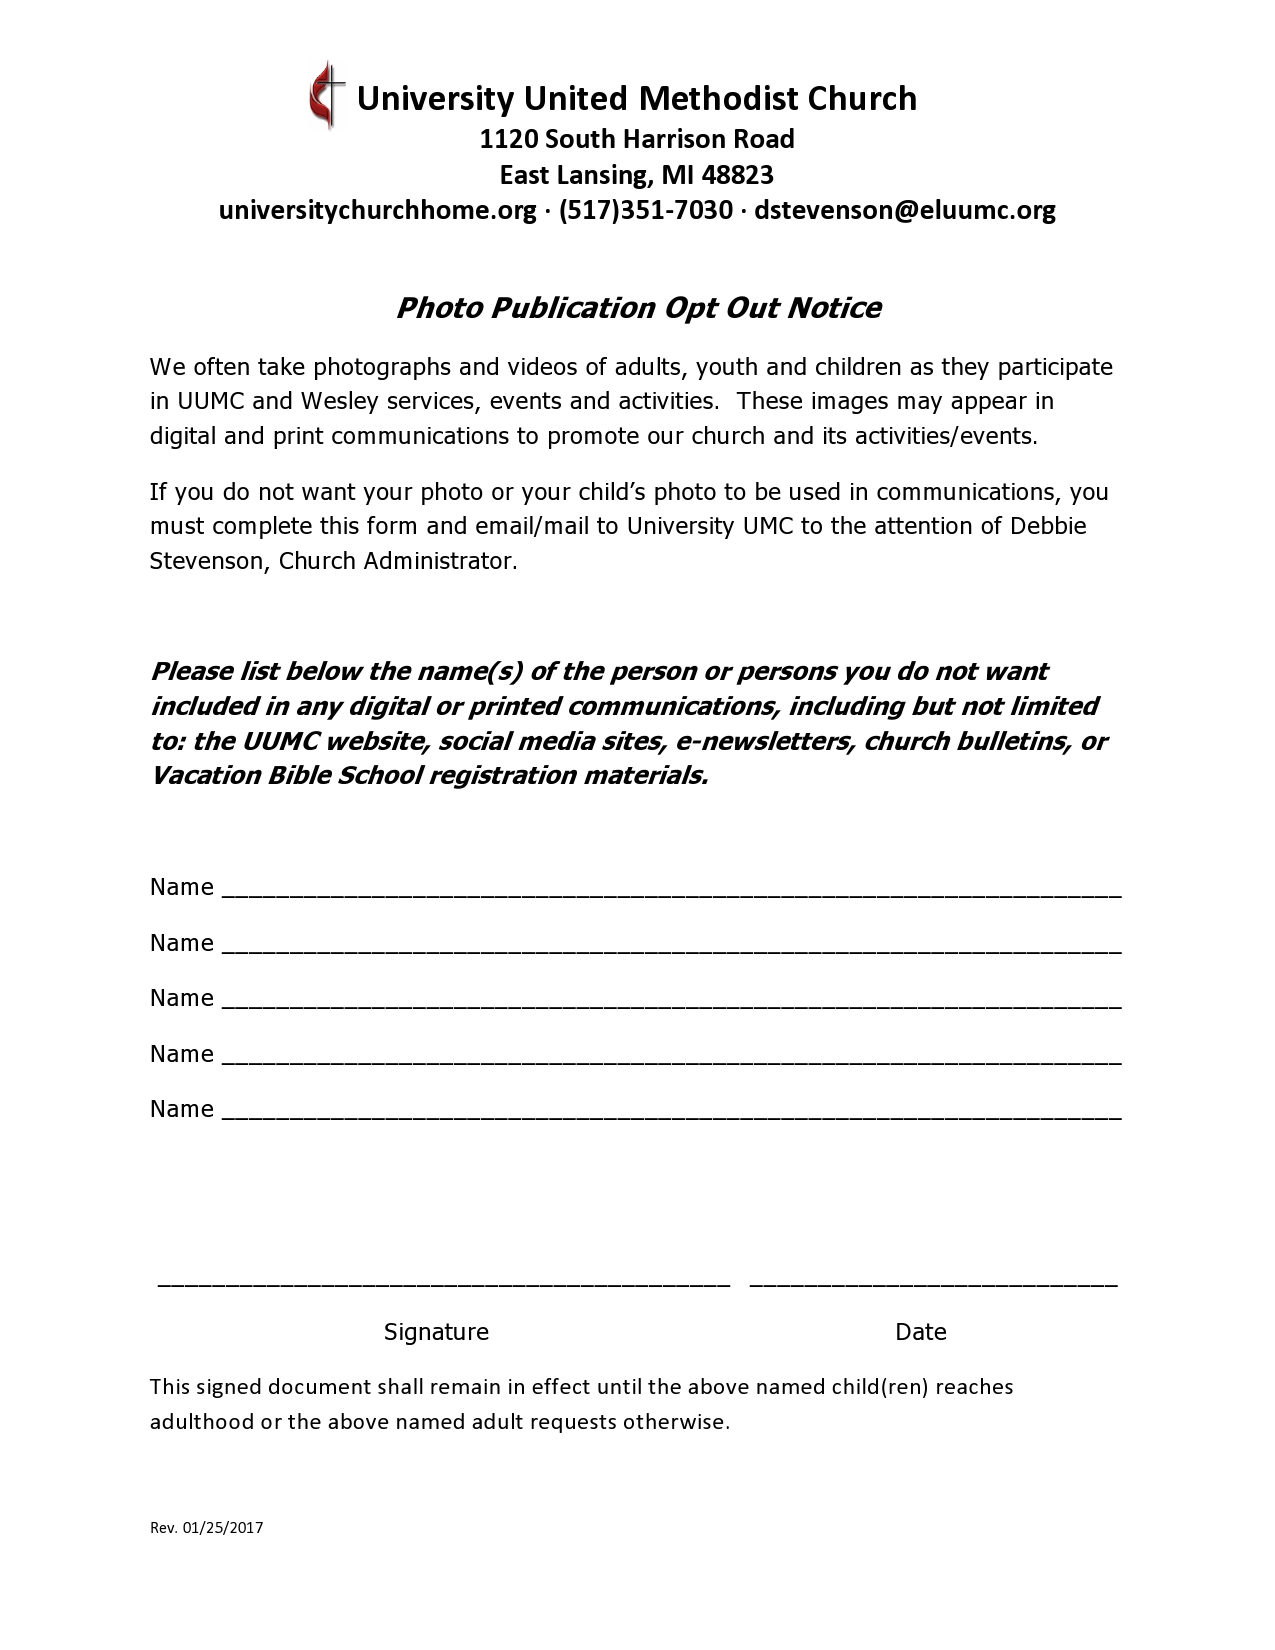 Photo Opt Out Form — University United Methodist Church on church media training, church purchase order form, church work order forms,